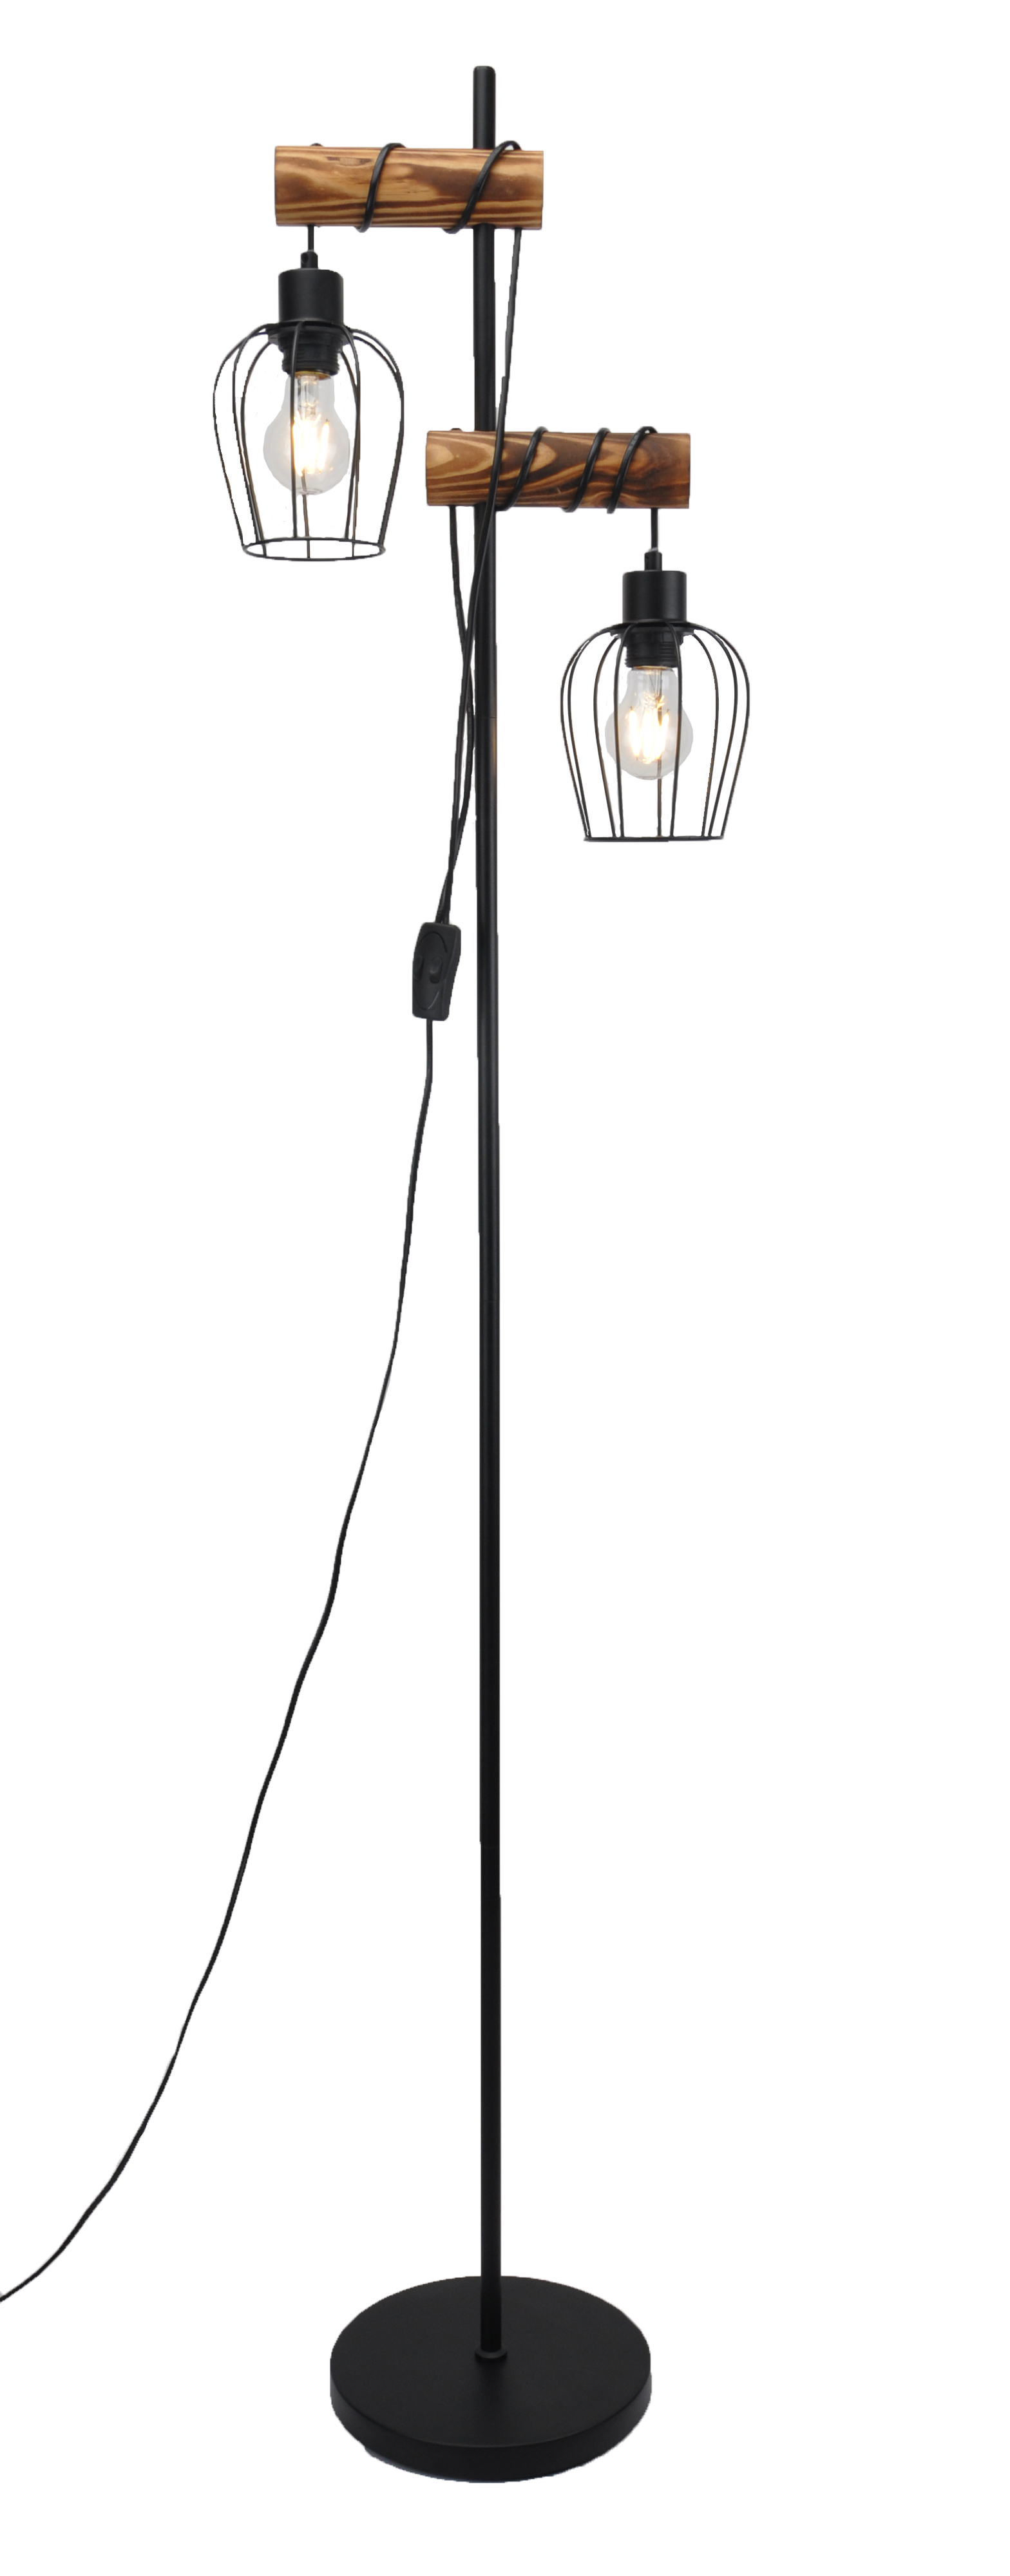 Floor lamp with smoked wood